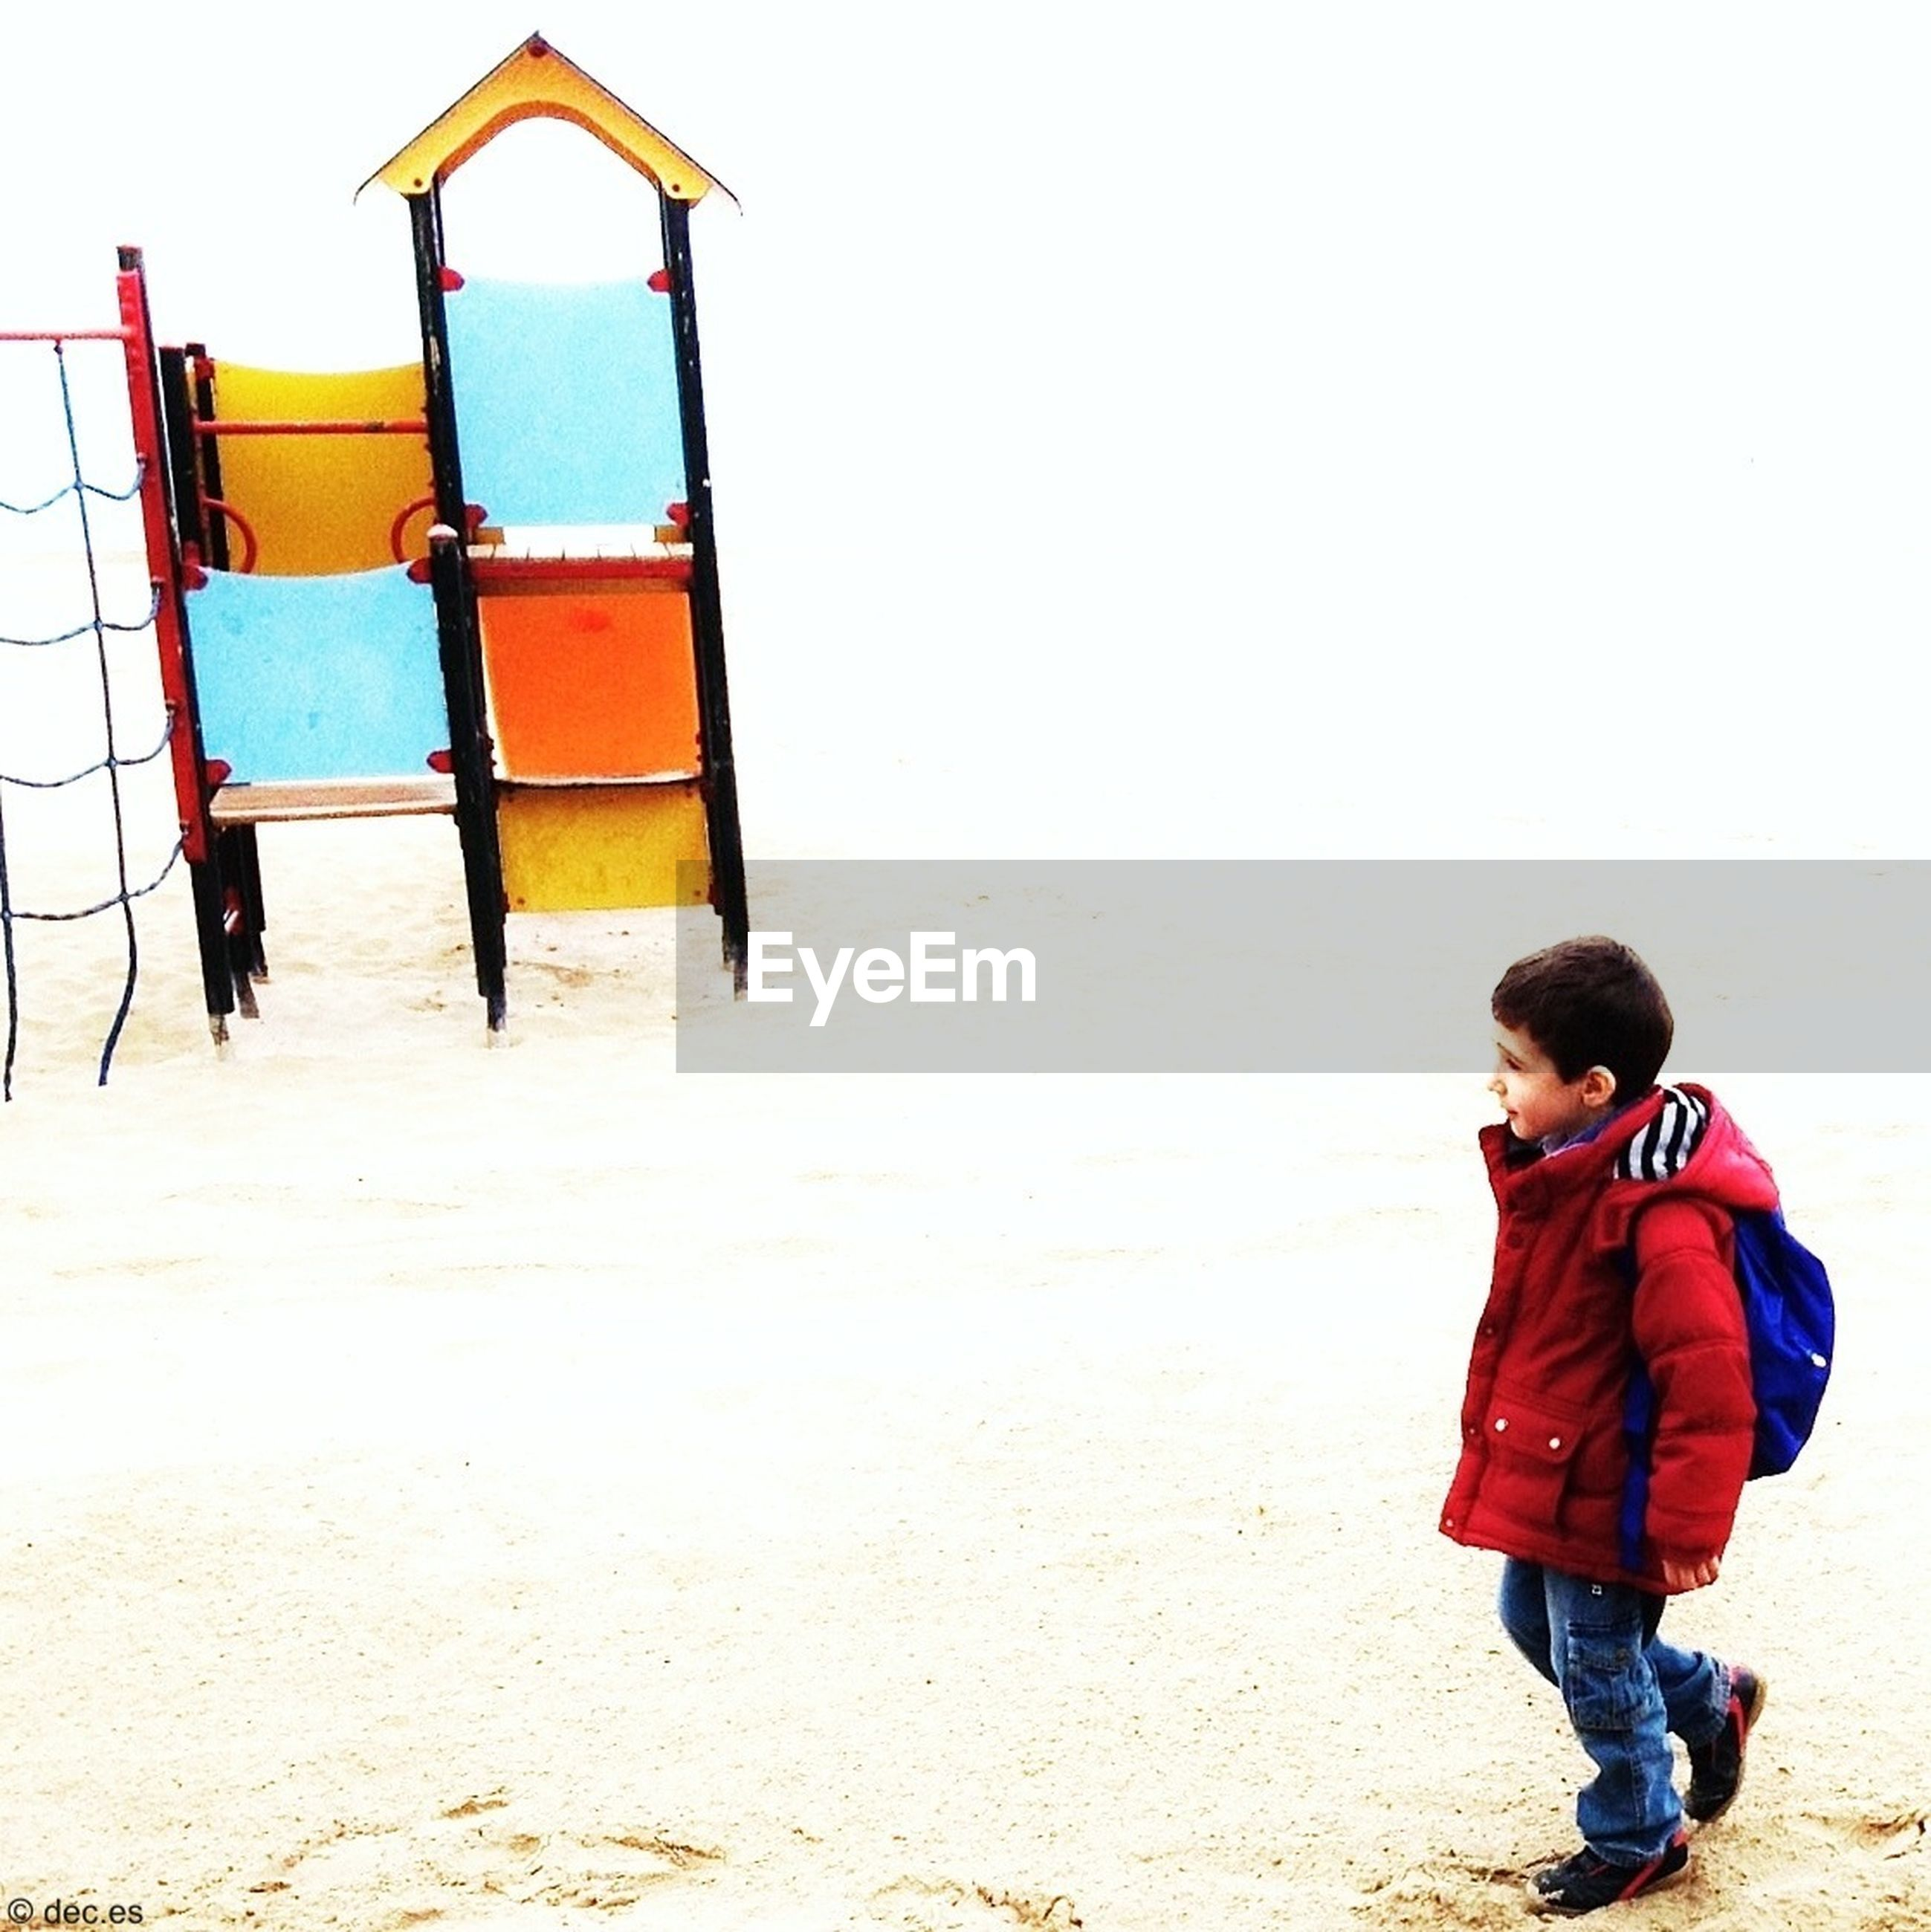 childhood, lifestyles, leisure activity, casual clothing, beach, full length, rear view, clear sky, elementary age, boys, girls, sand, standing, shore, copy space, innocence, person